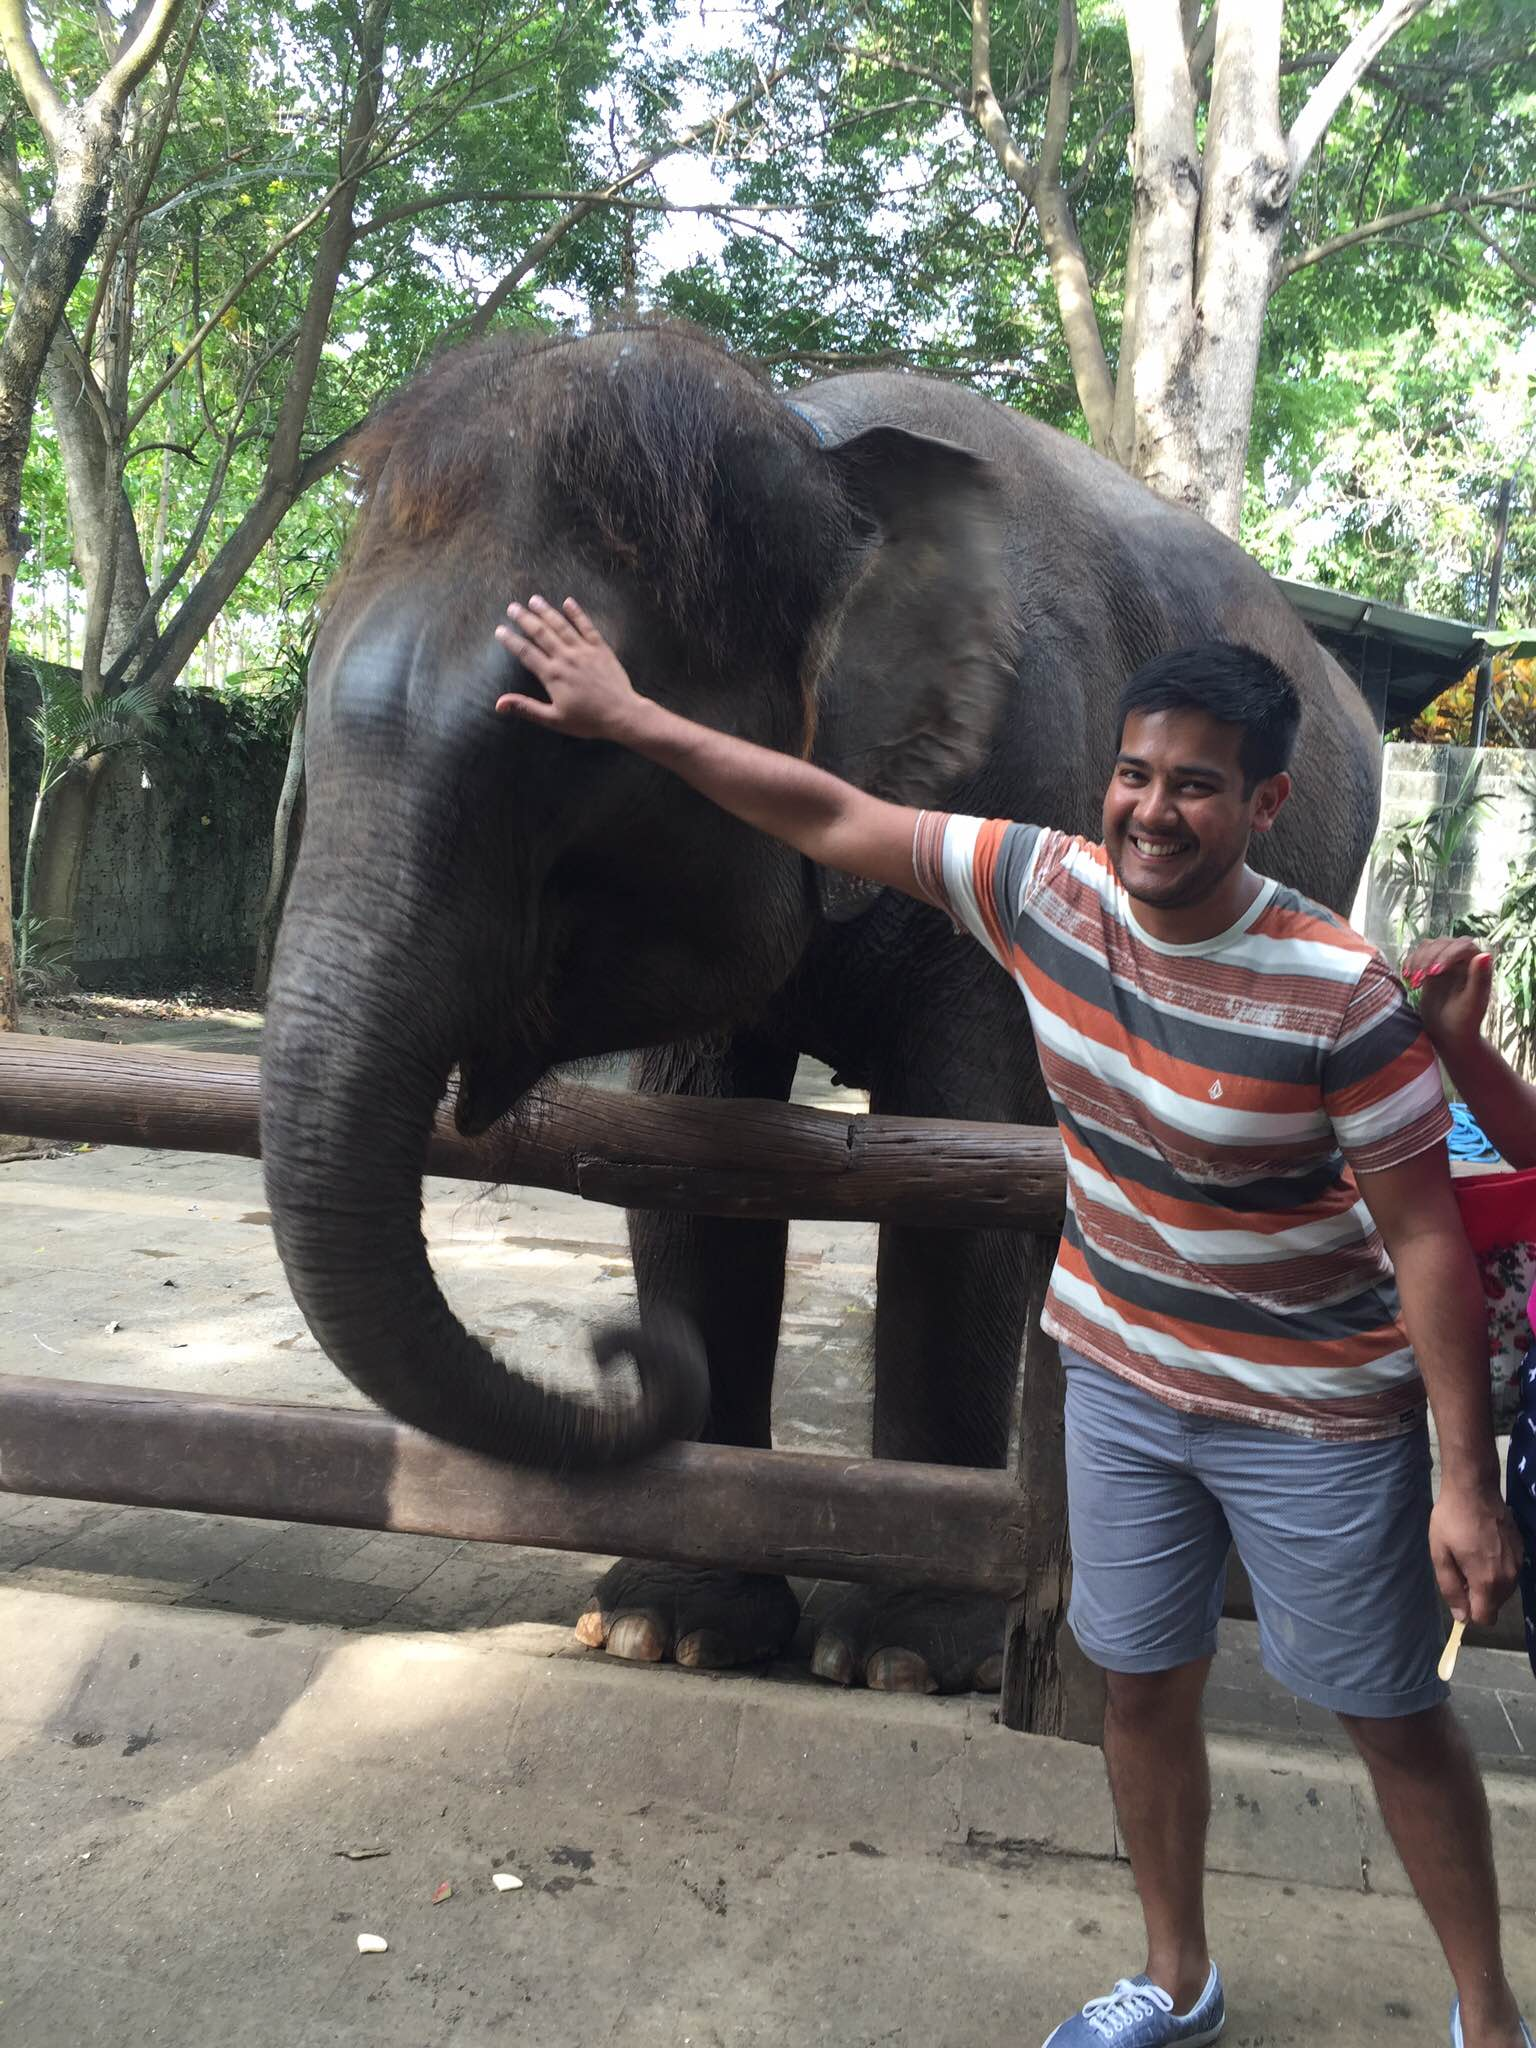 That's me with a Baby Elephant